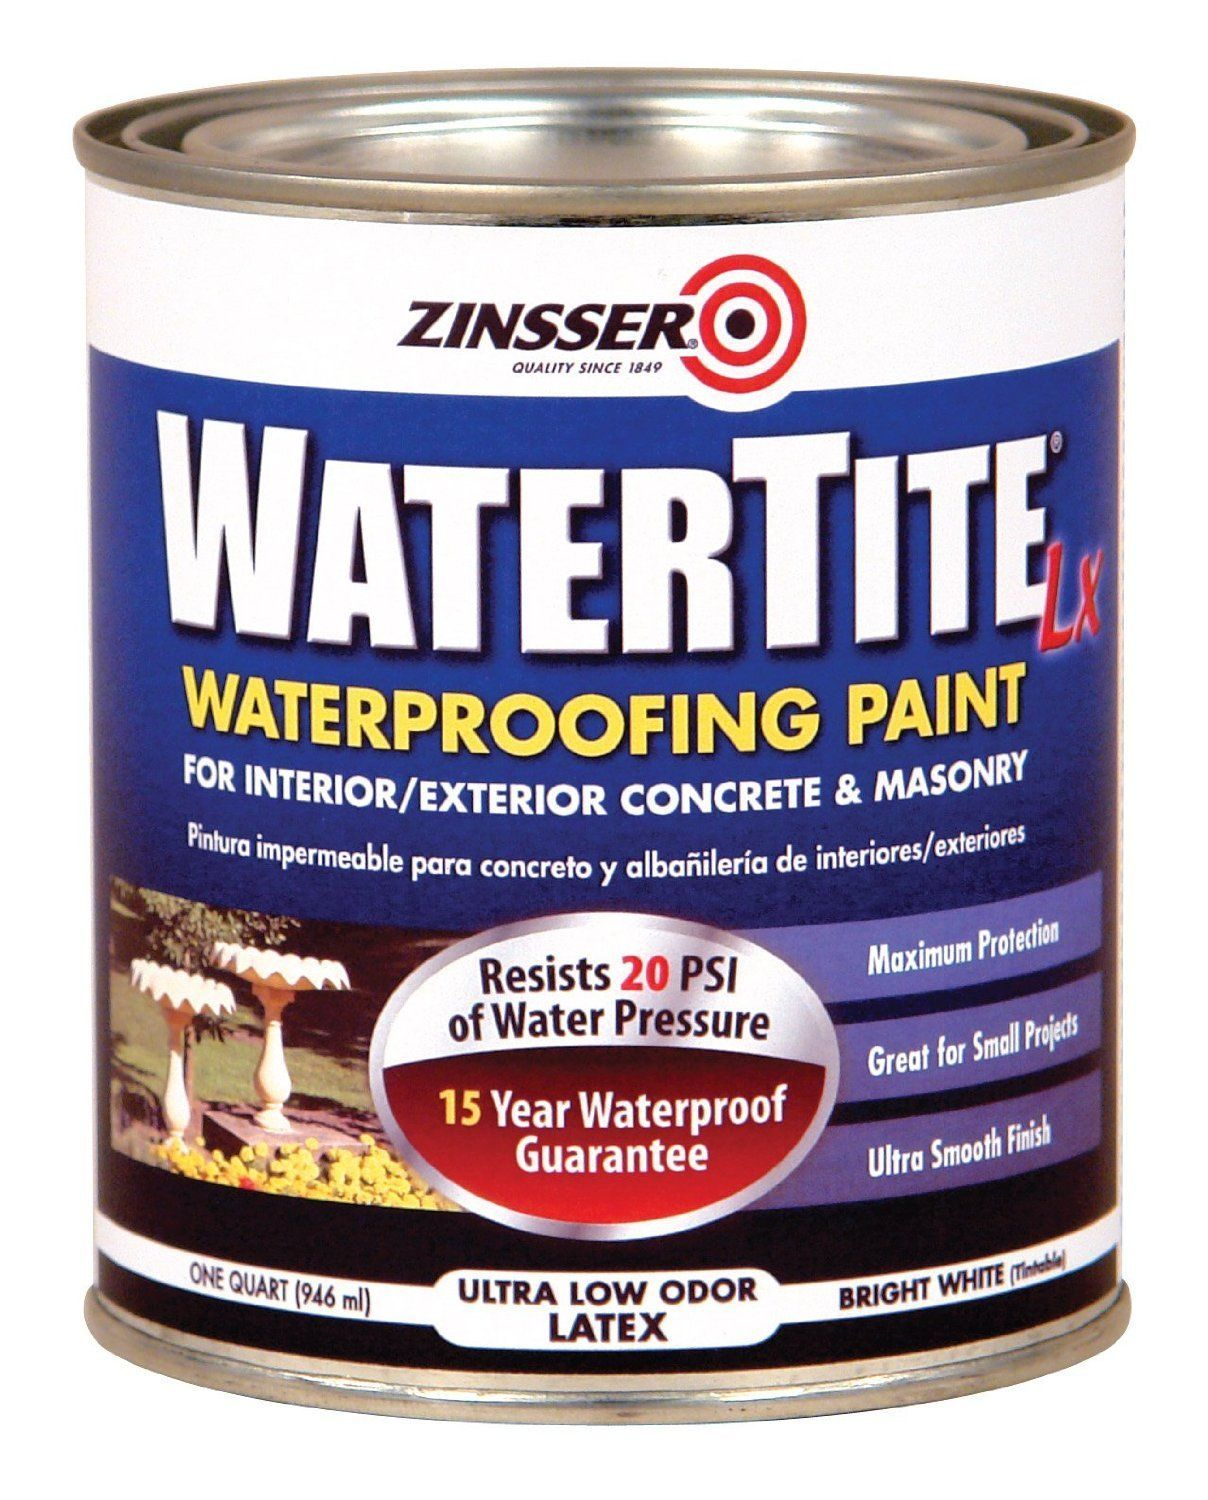 Zinsser 5024 Watertite Waterproofing Paint Water Base 1 Quart White Waterproof Paint Waterproofing Basement Mold And Mildew